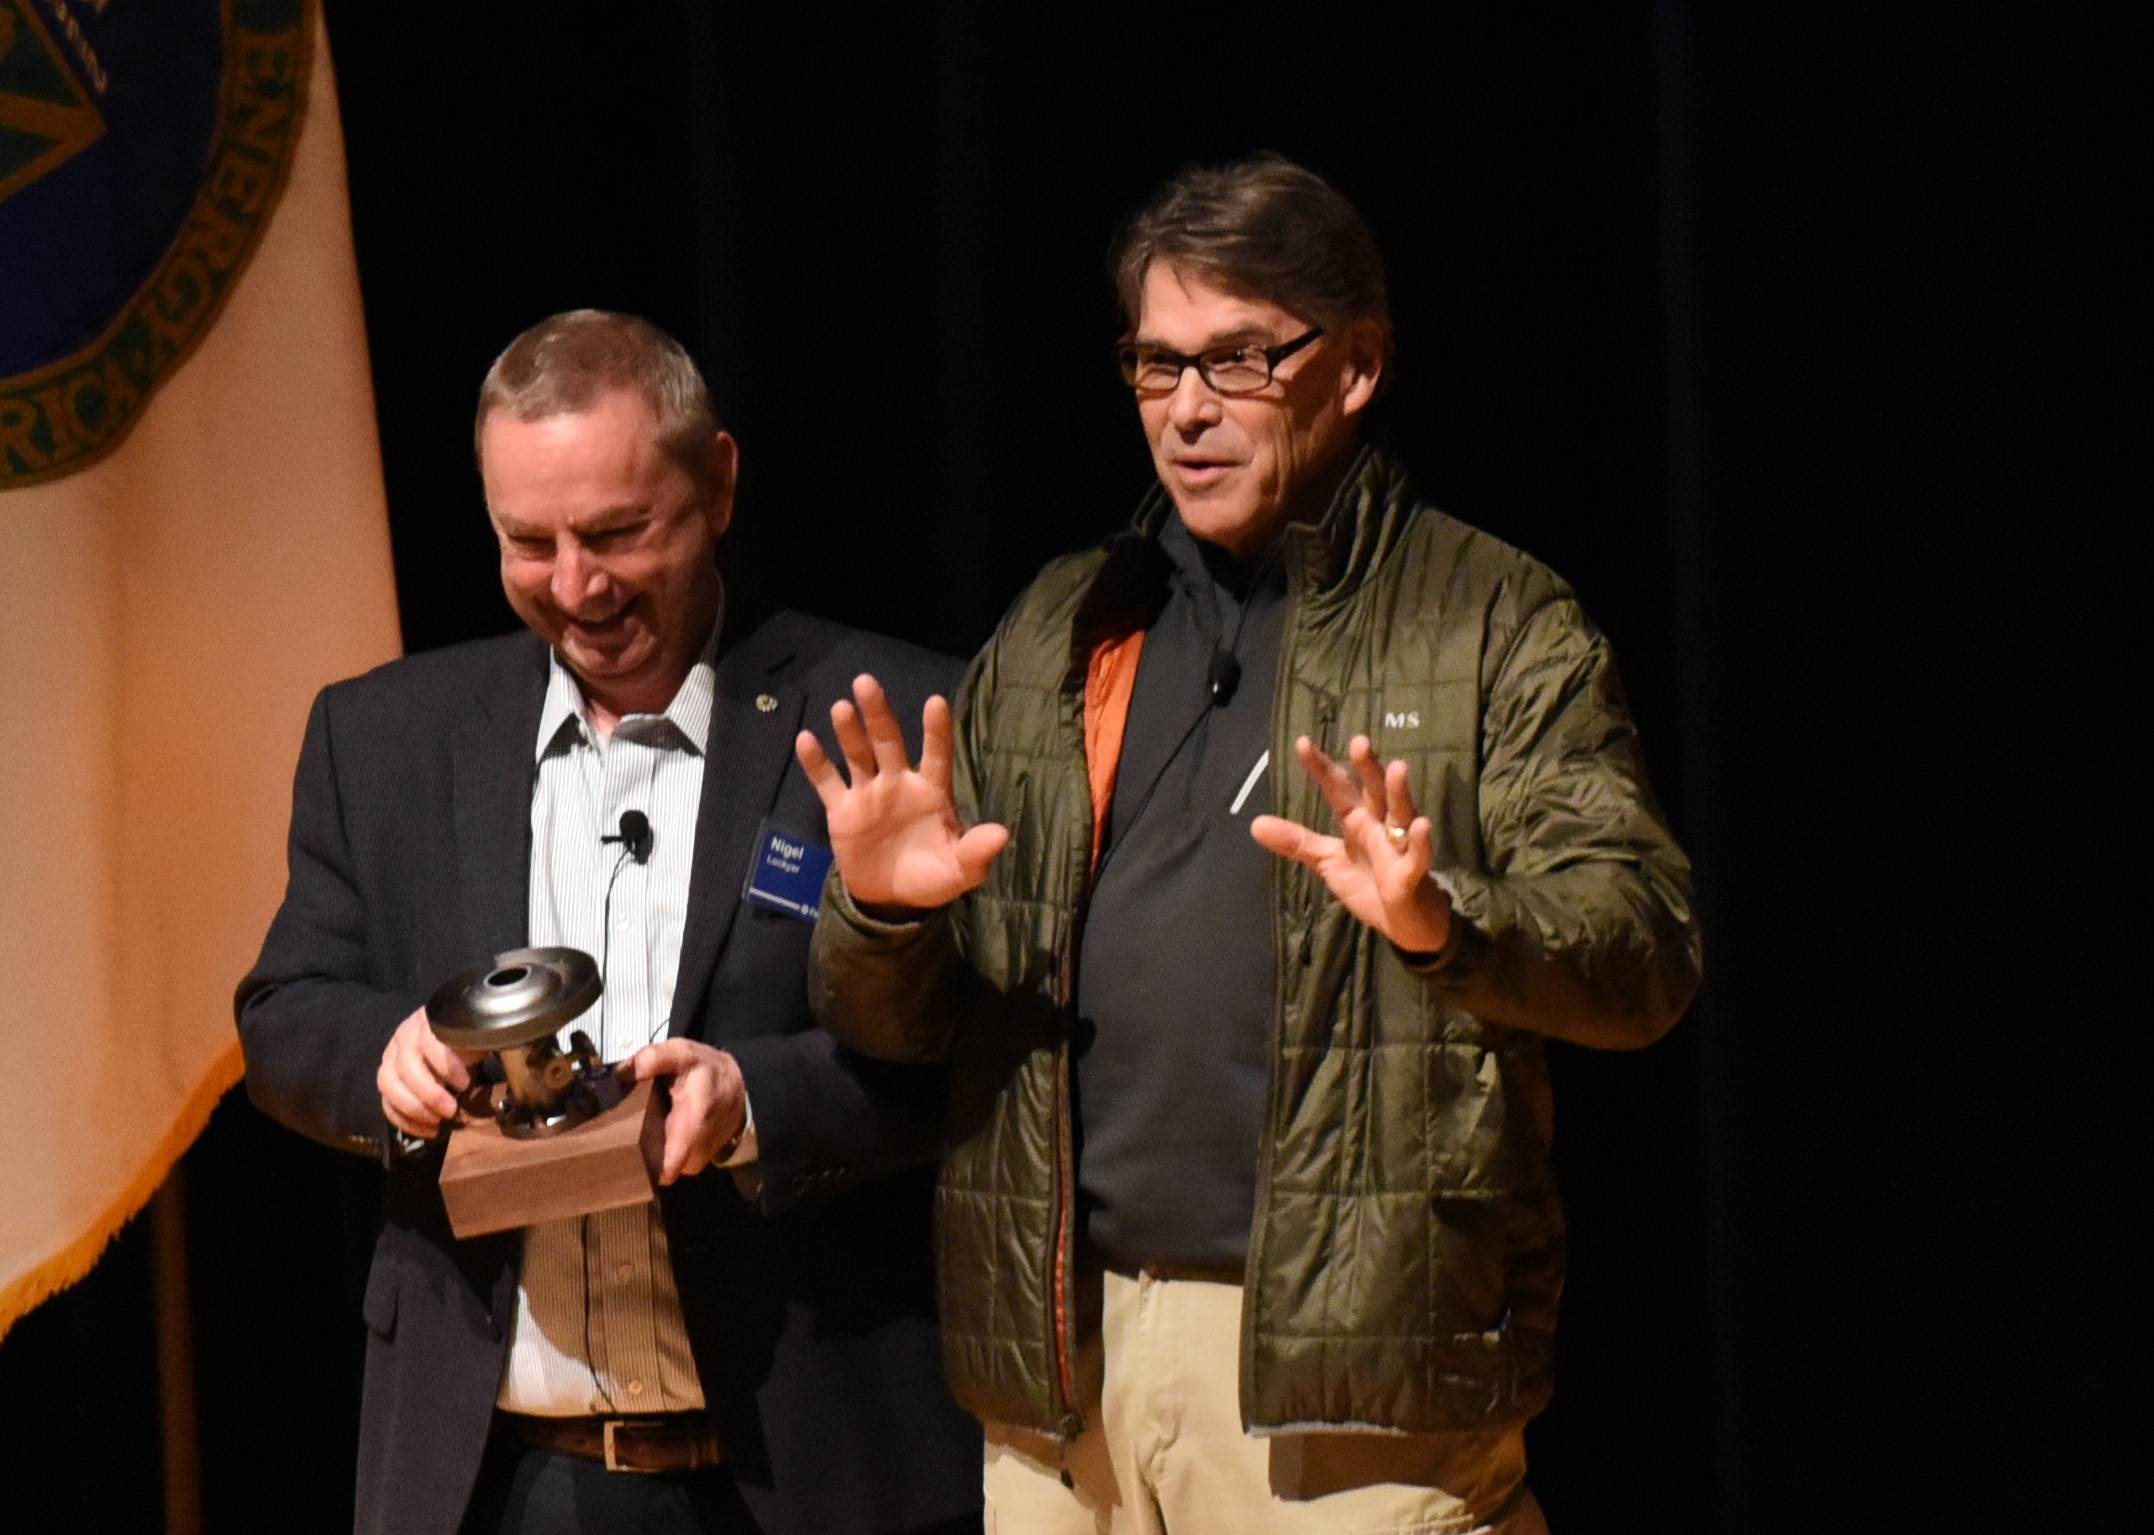 Secretary of Energy Rick Perry receives a gift from director Nigel Lockyer after a speech Tuesday at Fermilab in Batavia.